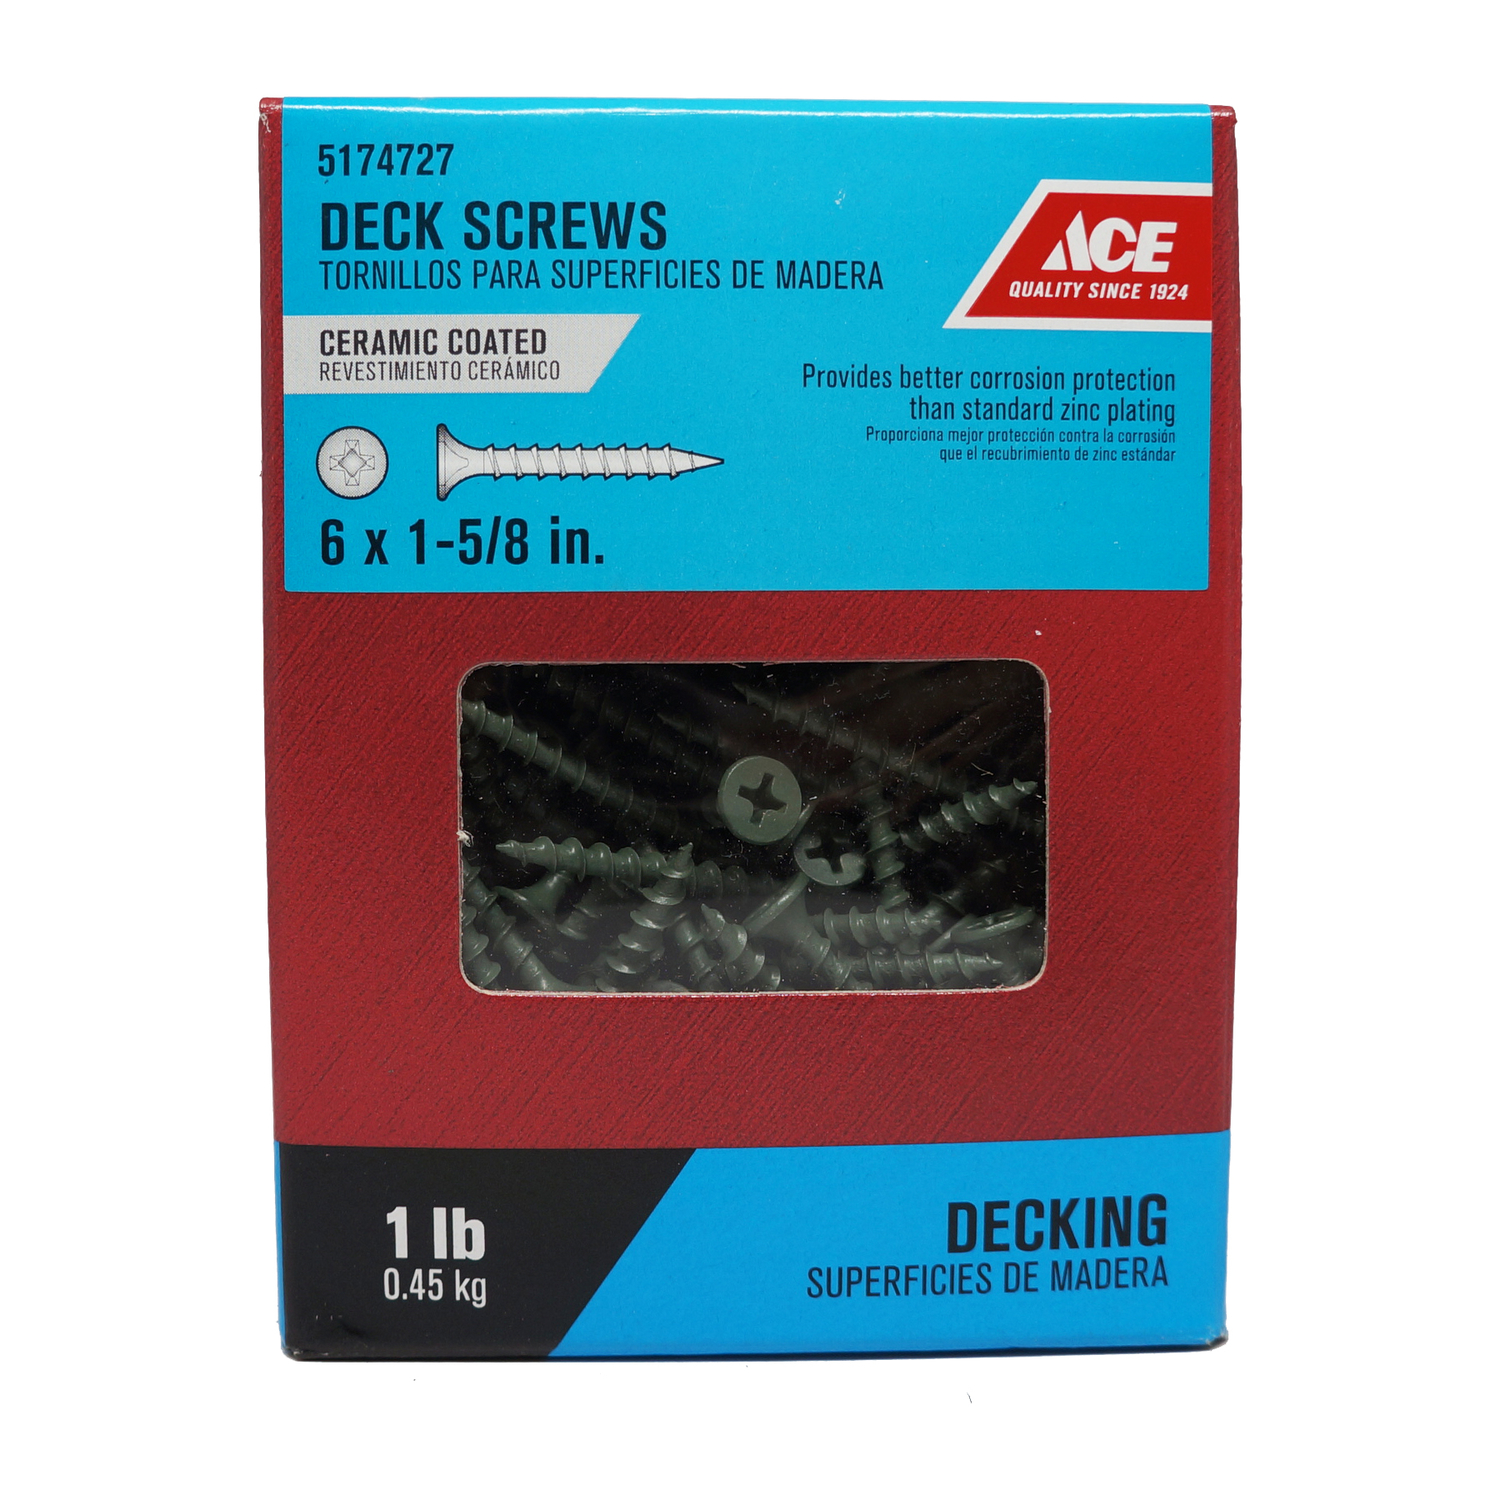 Ace  No. 6   x 1-5/8 in. L Phillips  Ceramic Coated  Steel  Deck Screws  1 lb. Bugle  230 each